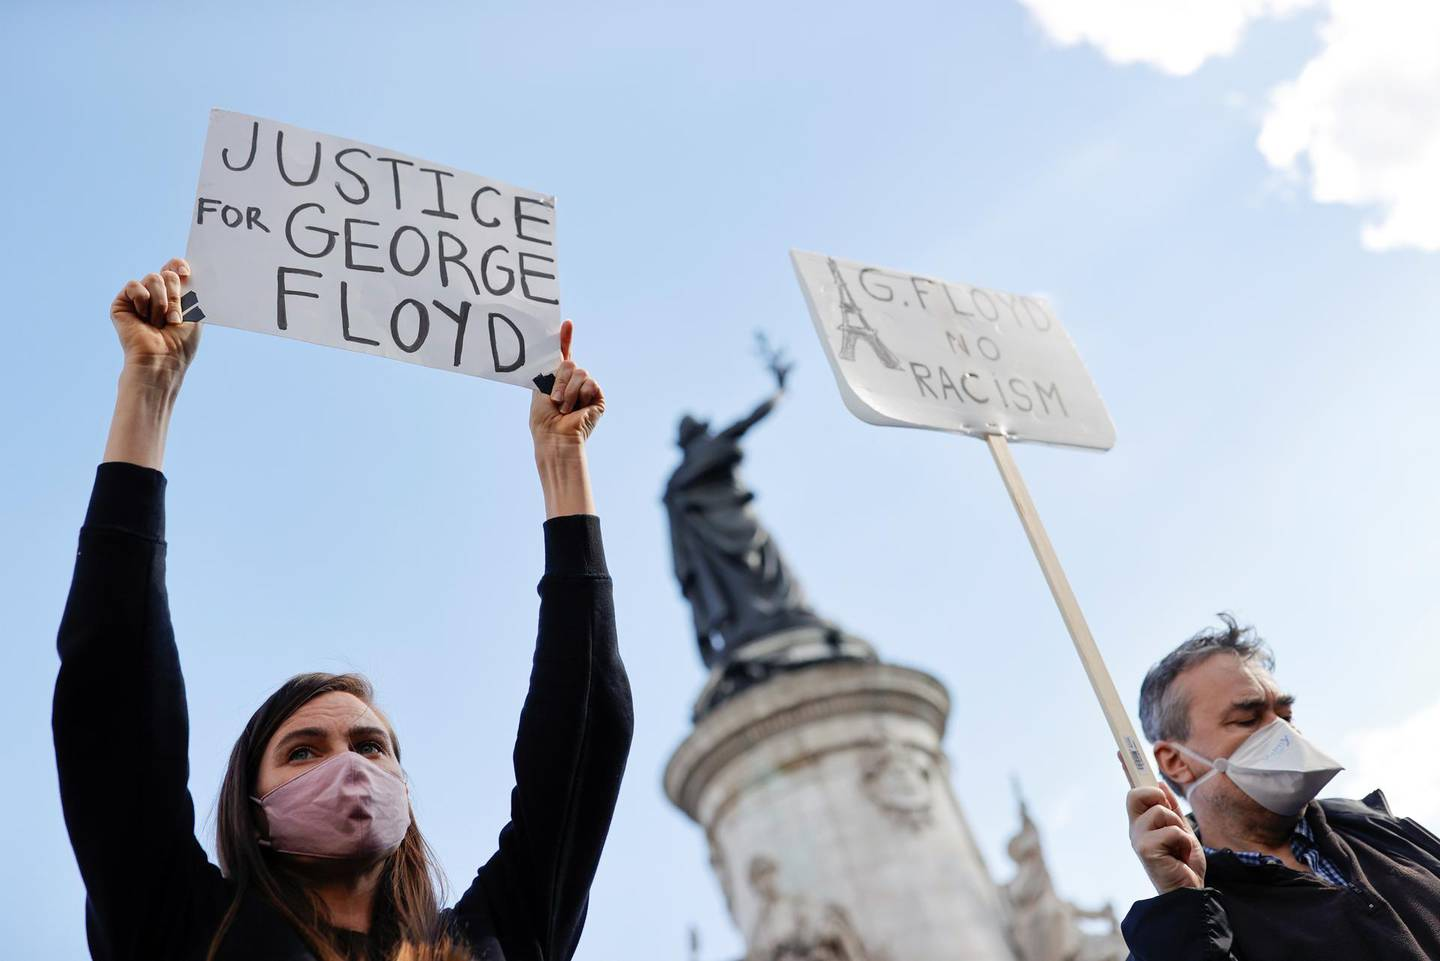 Demonstrators hold placards as they attend a protest at the Place de la Republique square, following the death of George Floyd in Minneapolis police custody, in Paris France, June 9, 2020. REUTERS/Christian Hartmann